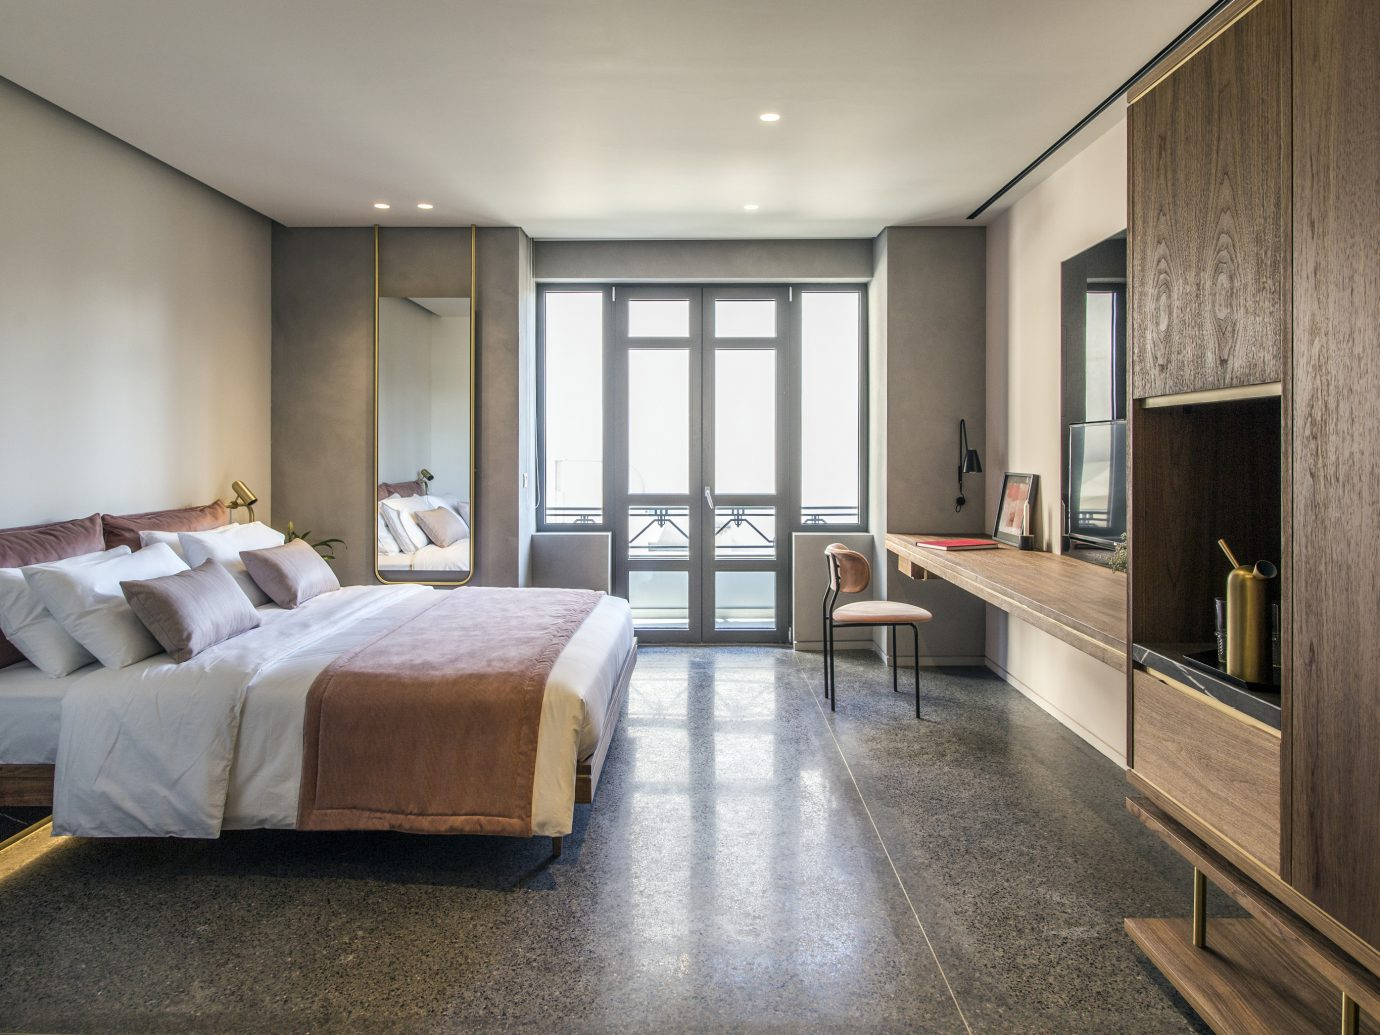 Bedroom at Perianth Athens